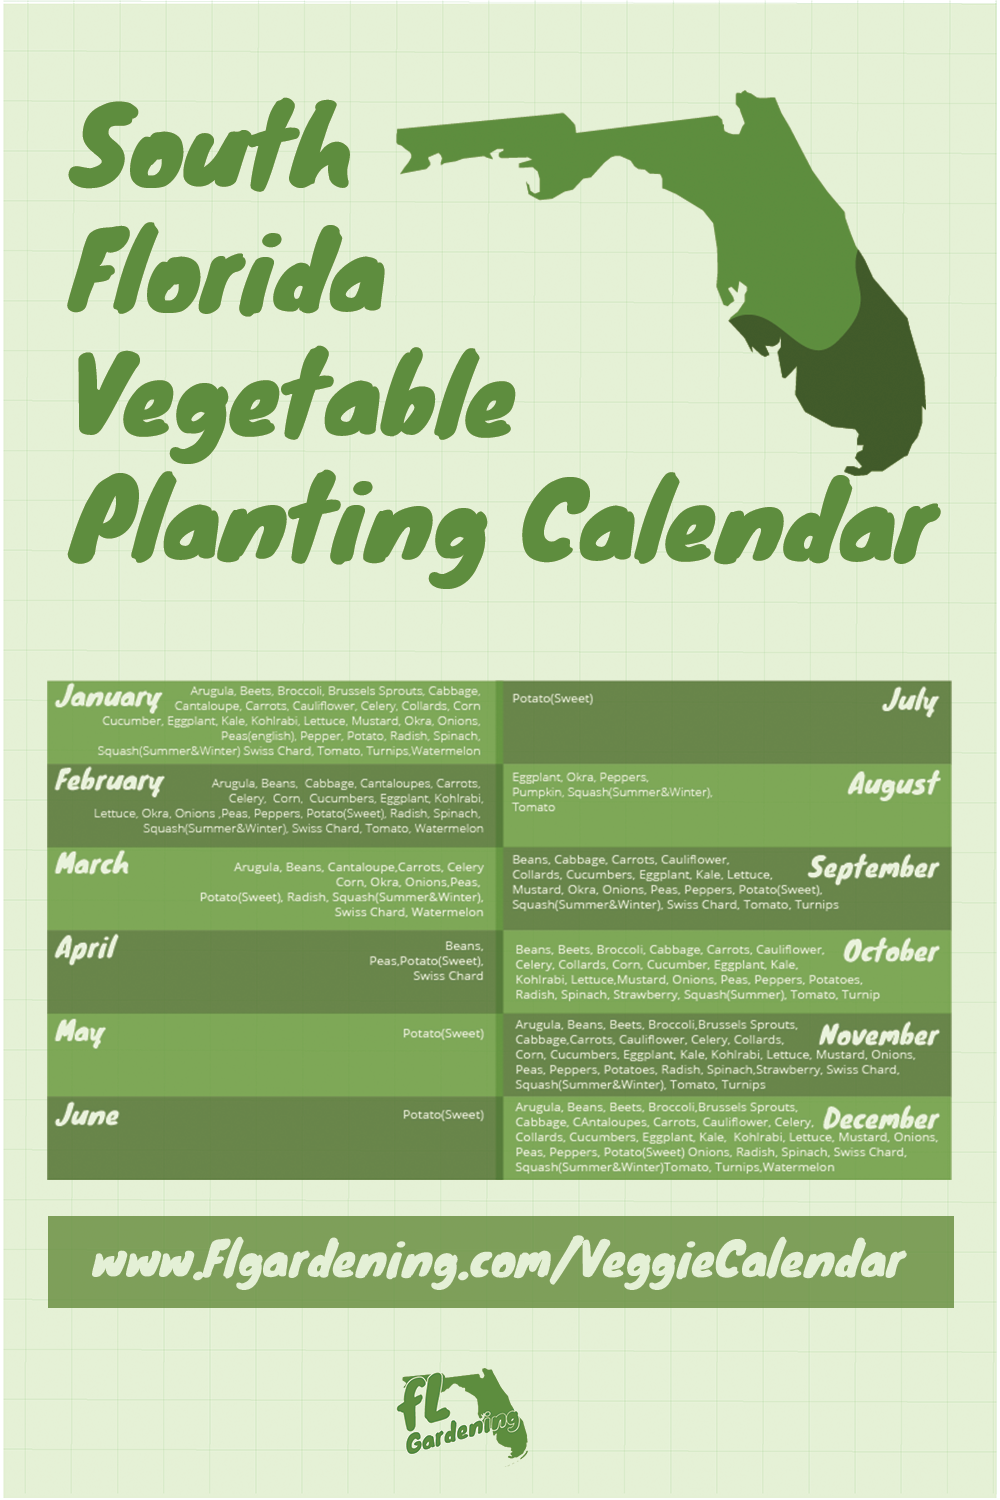 9461c426e3af711992dca309dc3673f9 - Gardening In South Florida What To Plant